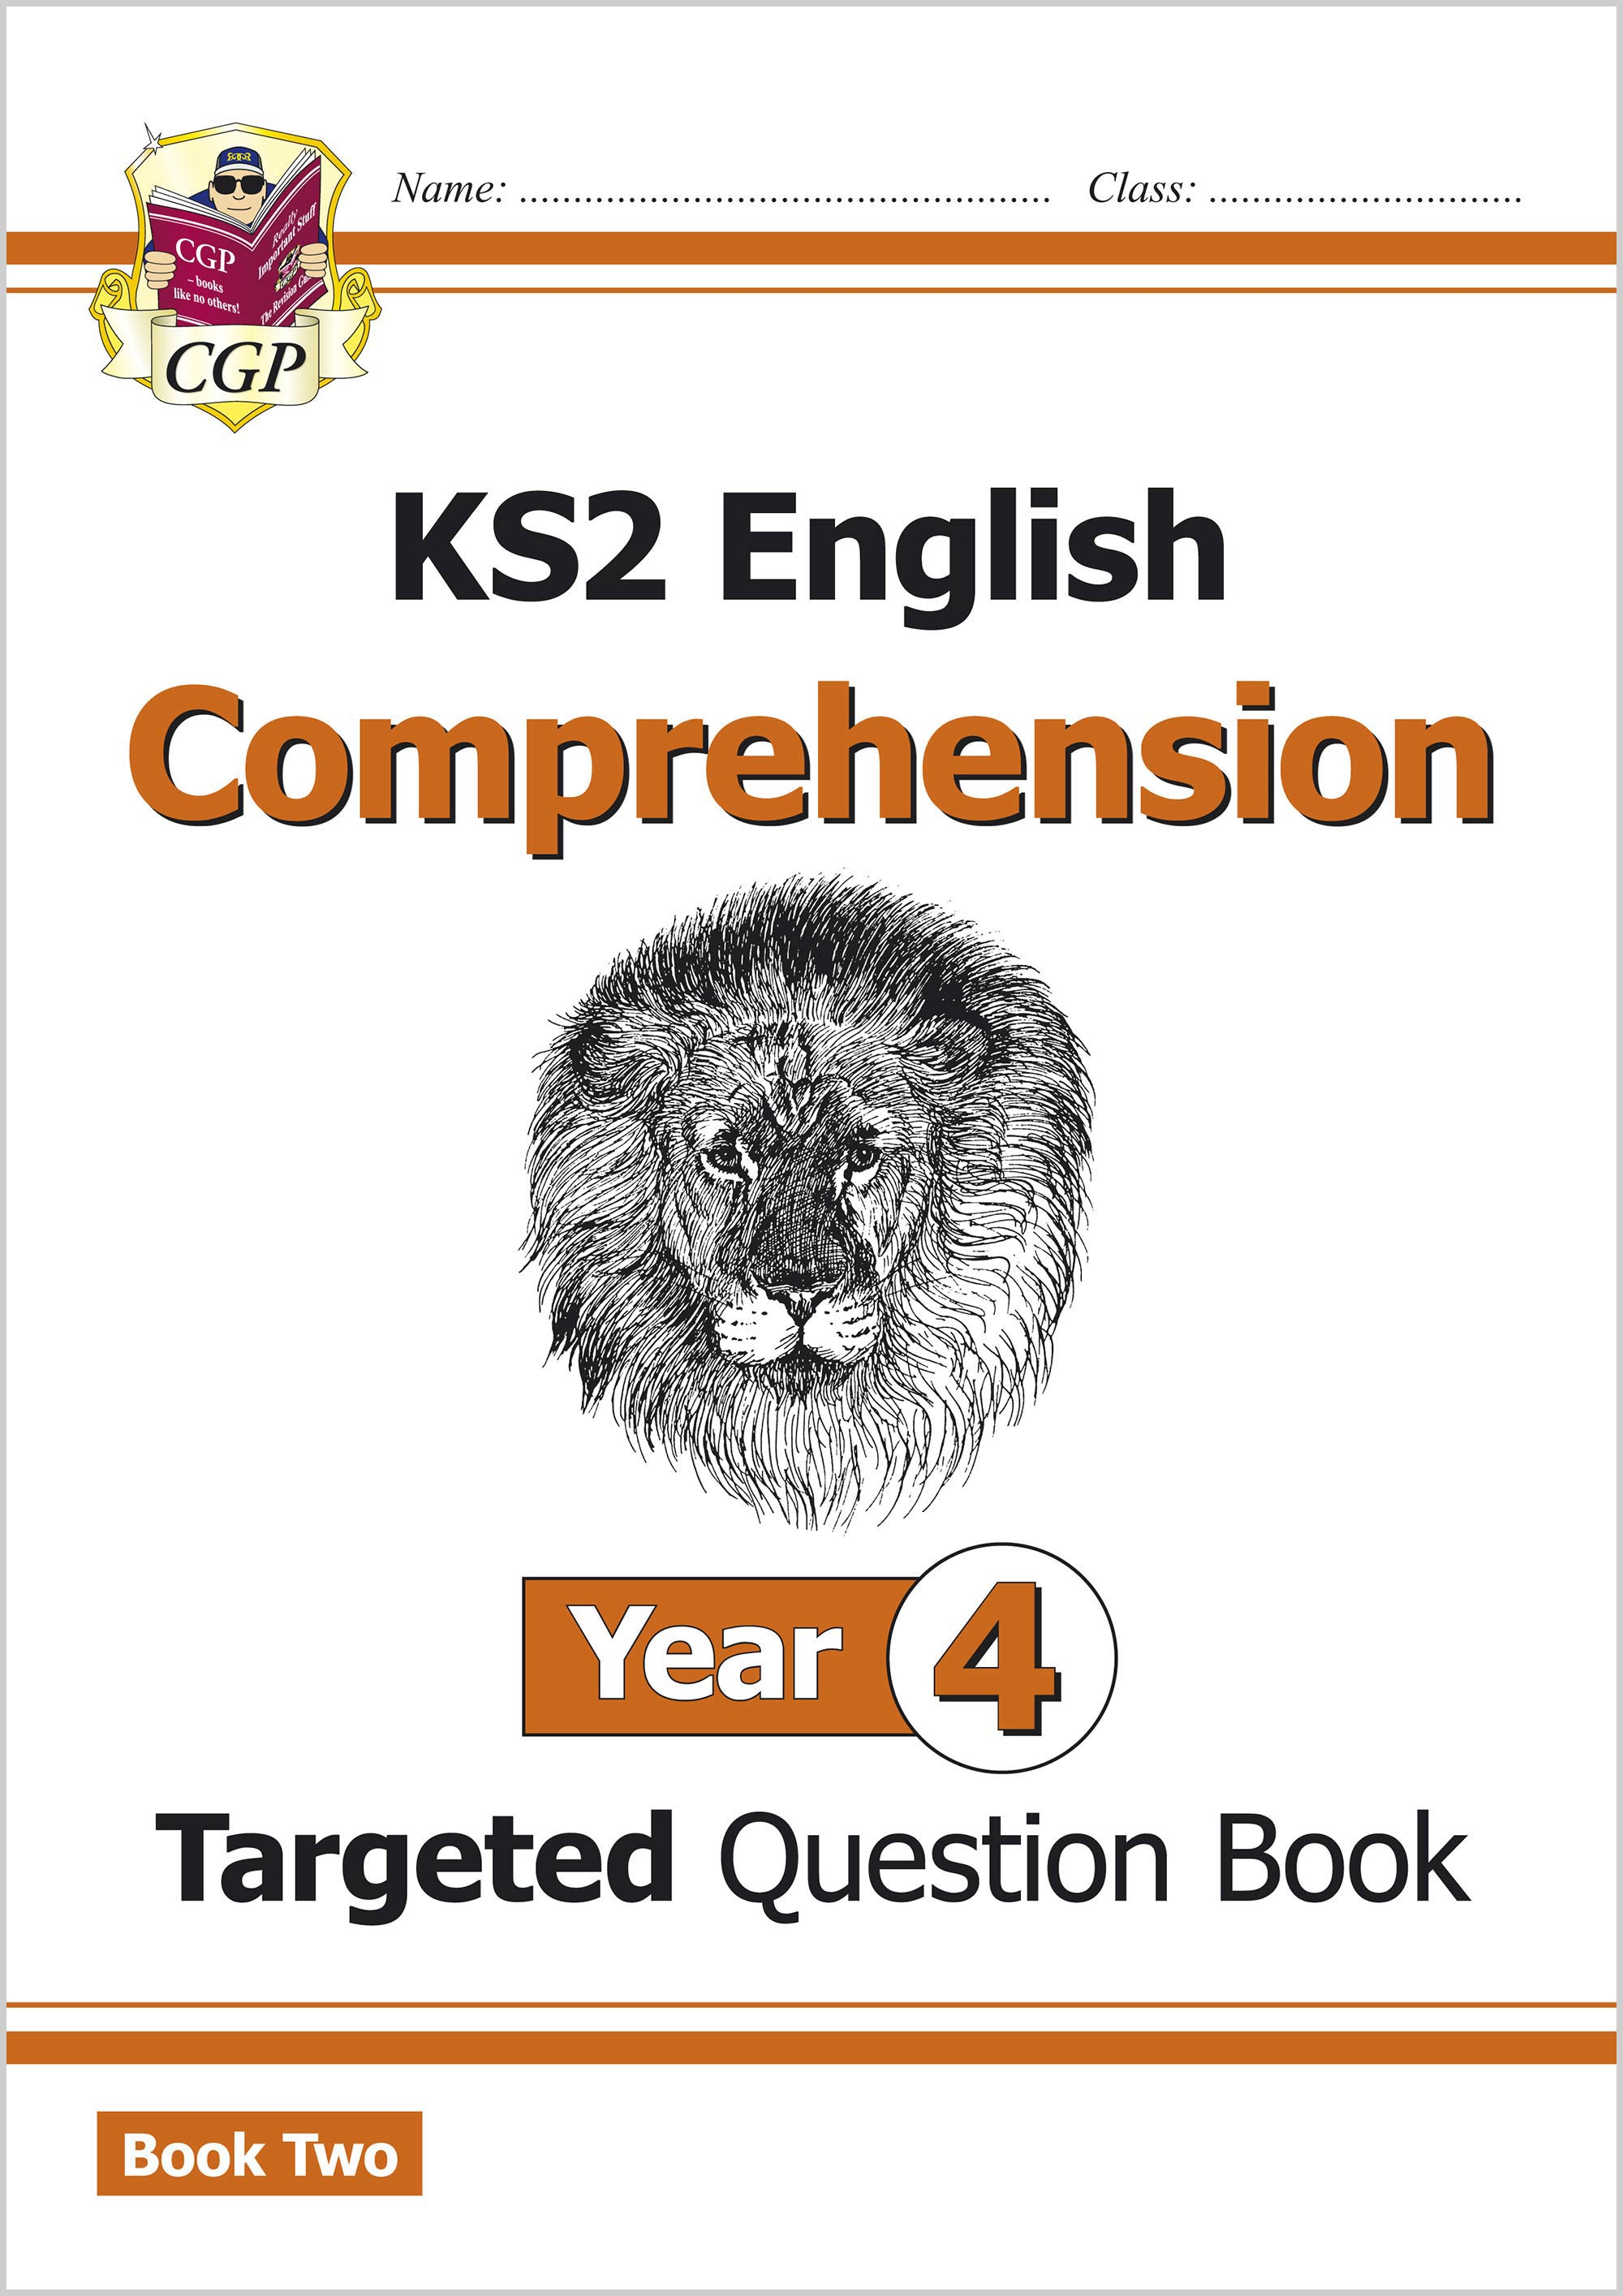 E4CW221 - New KS2 English Targeted Question Book: Year 4 Comprehension - Book 2